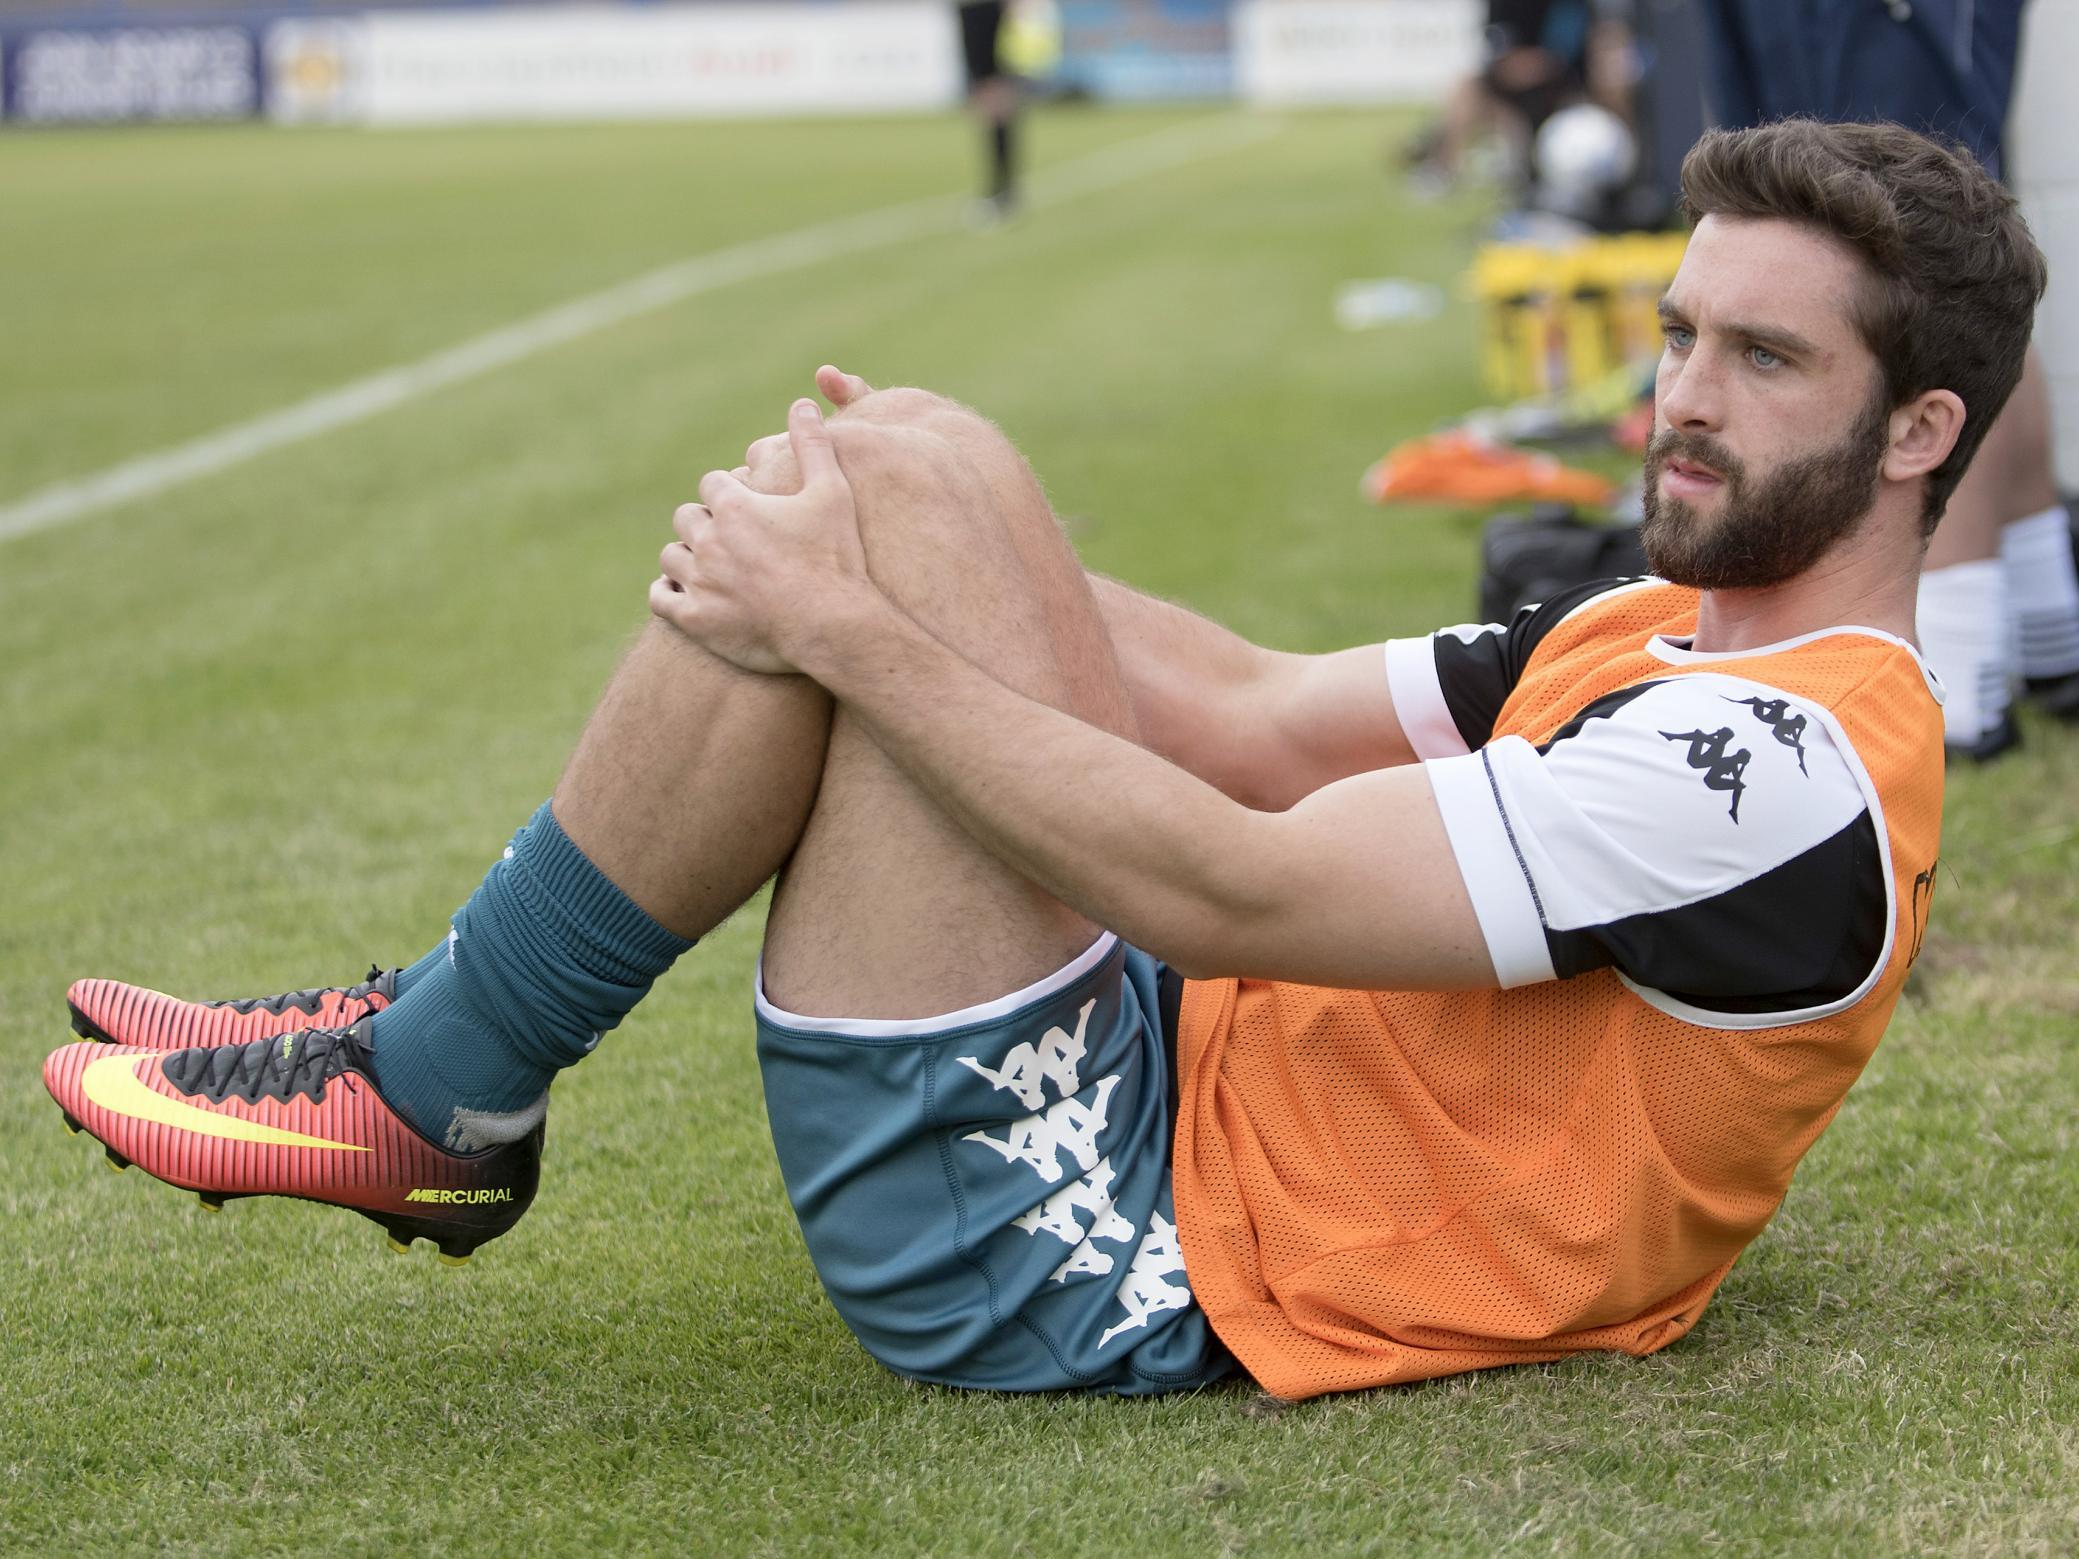 Injury rules Will Grigg out of Northern Ireland duty